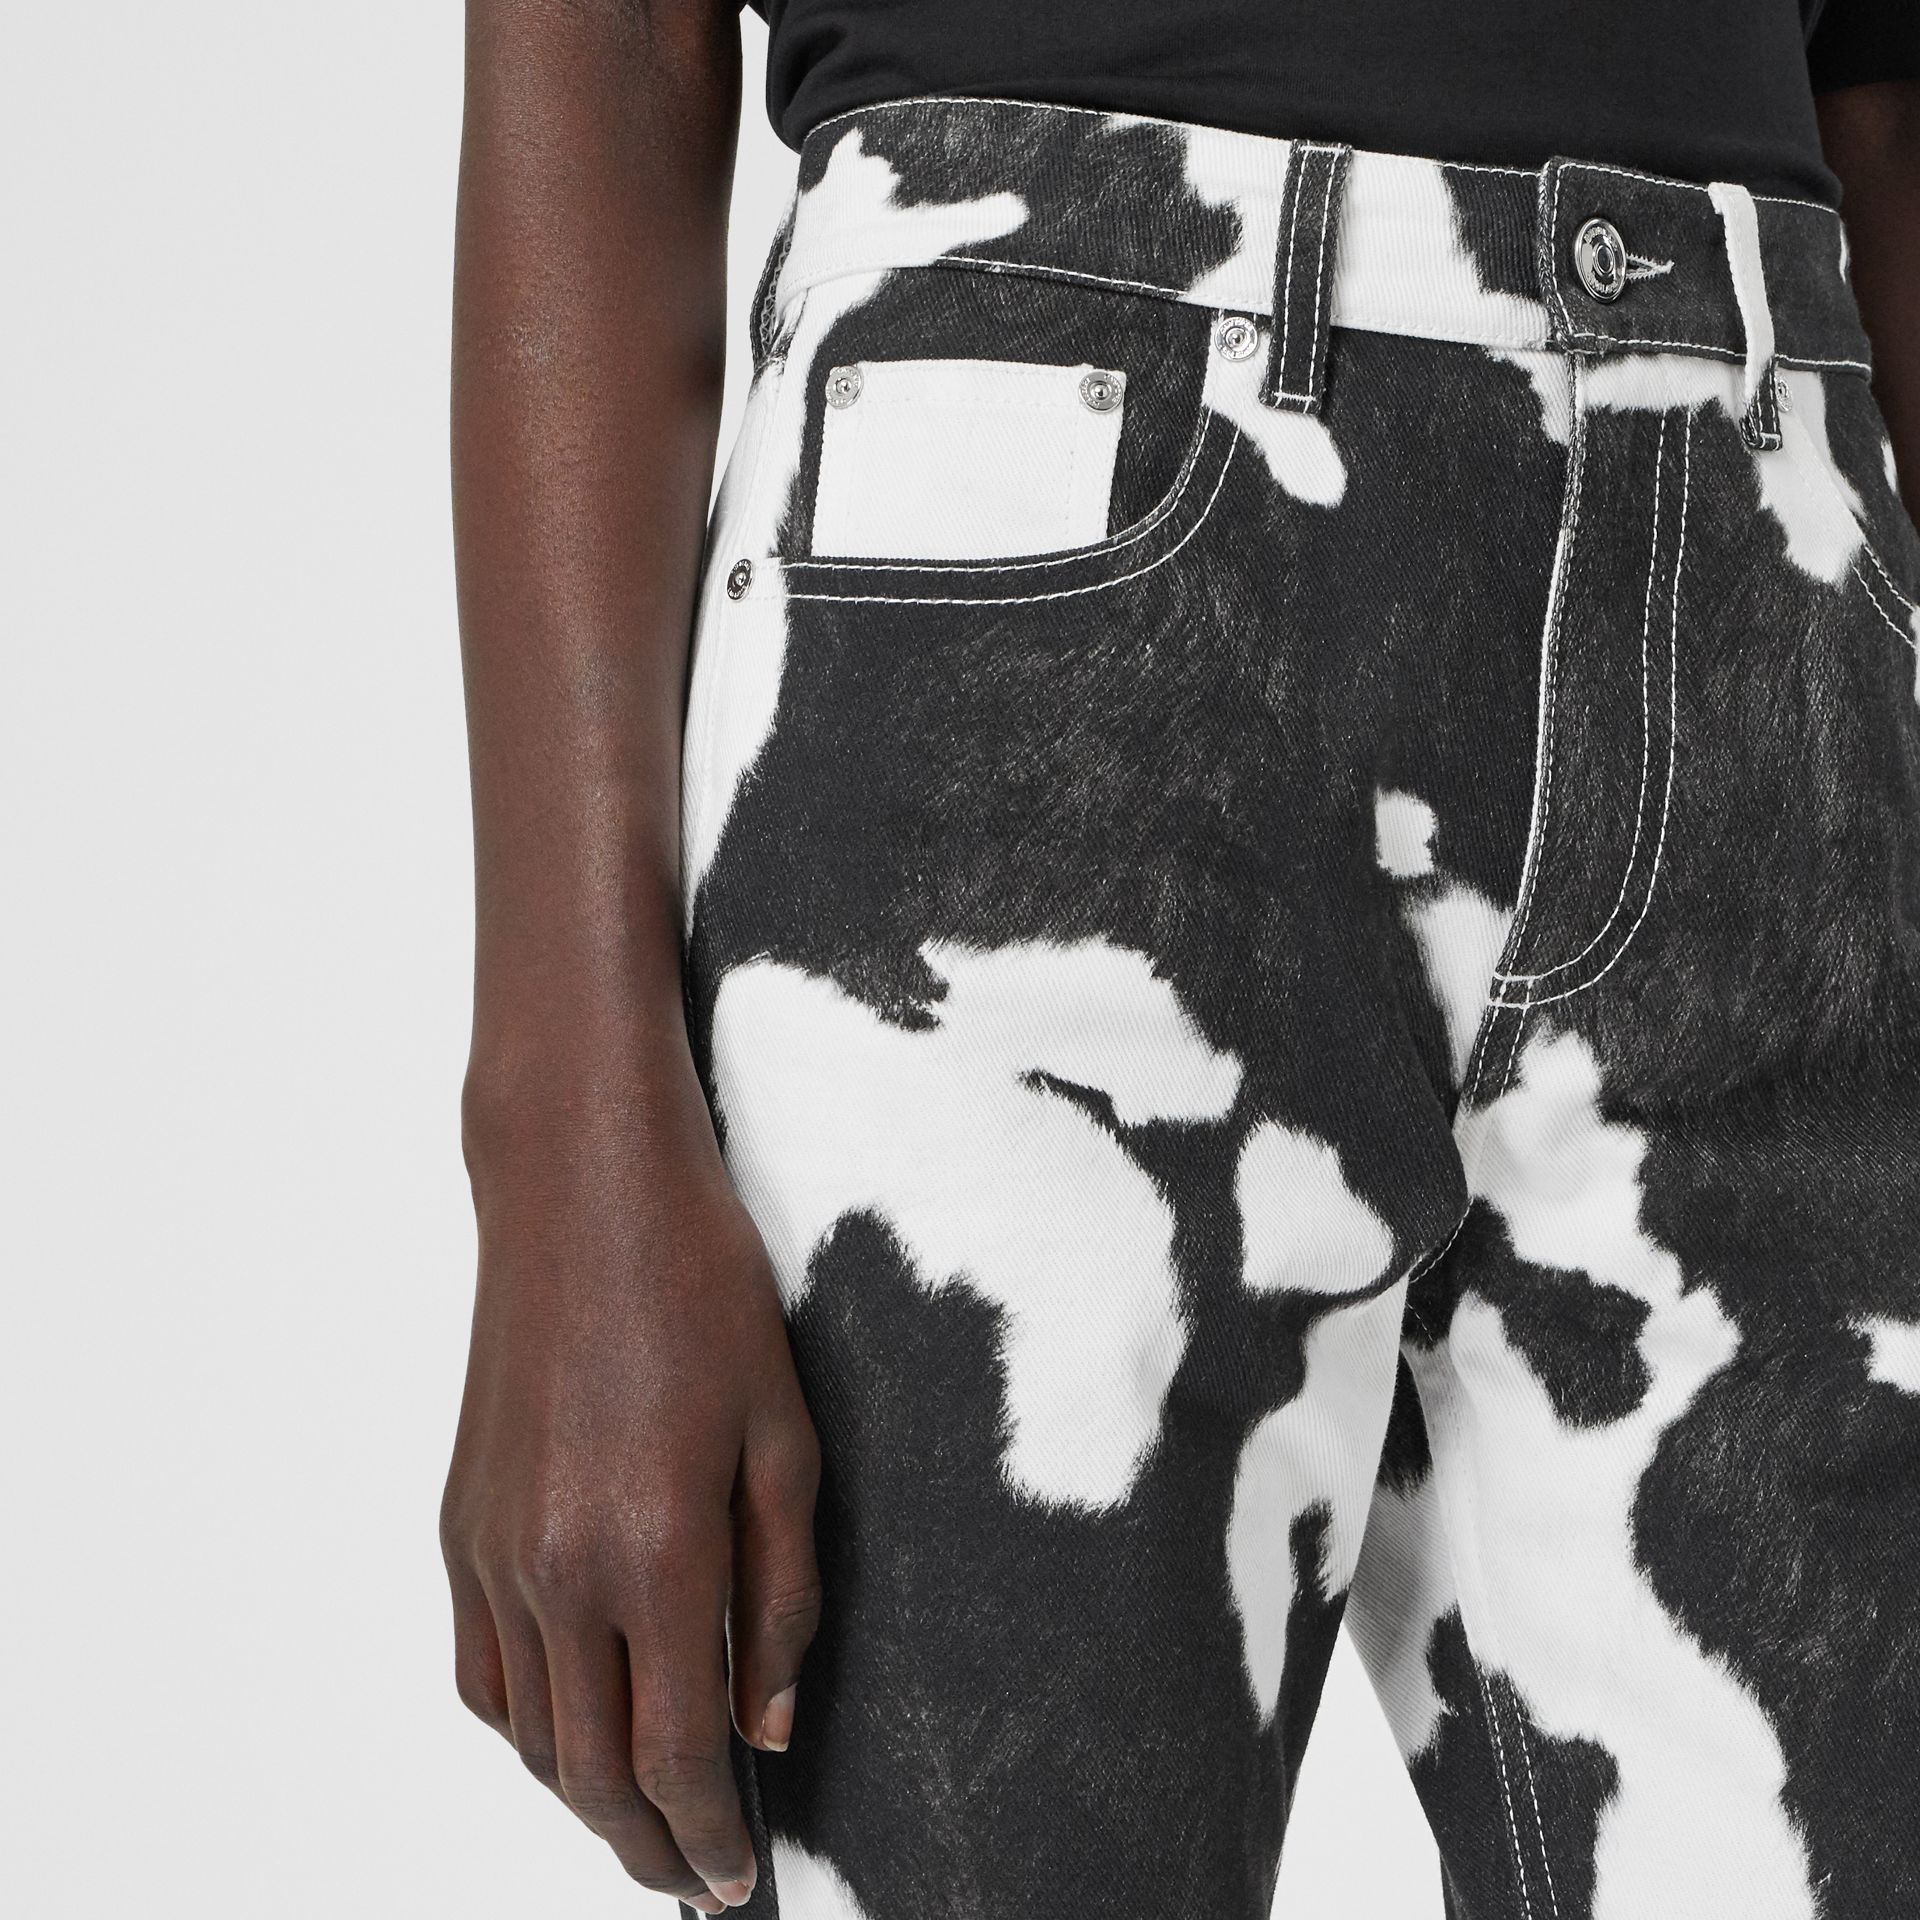 Straight Fit Cow Print Jeans in Black - Women | Burberry Australia - gallery image 4